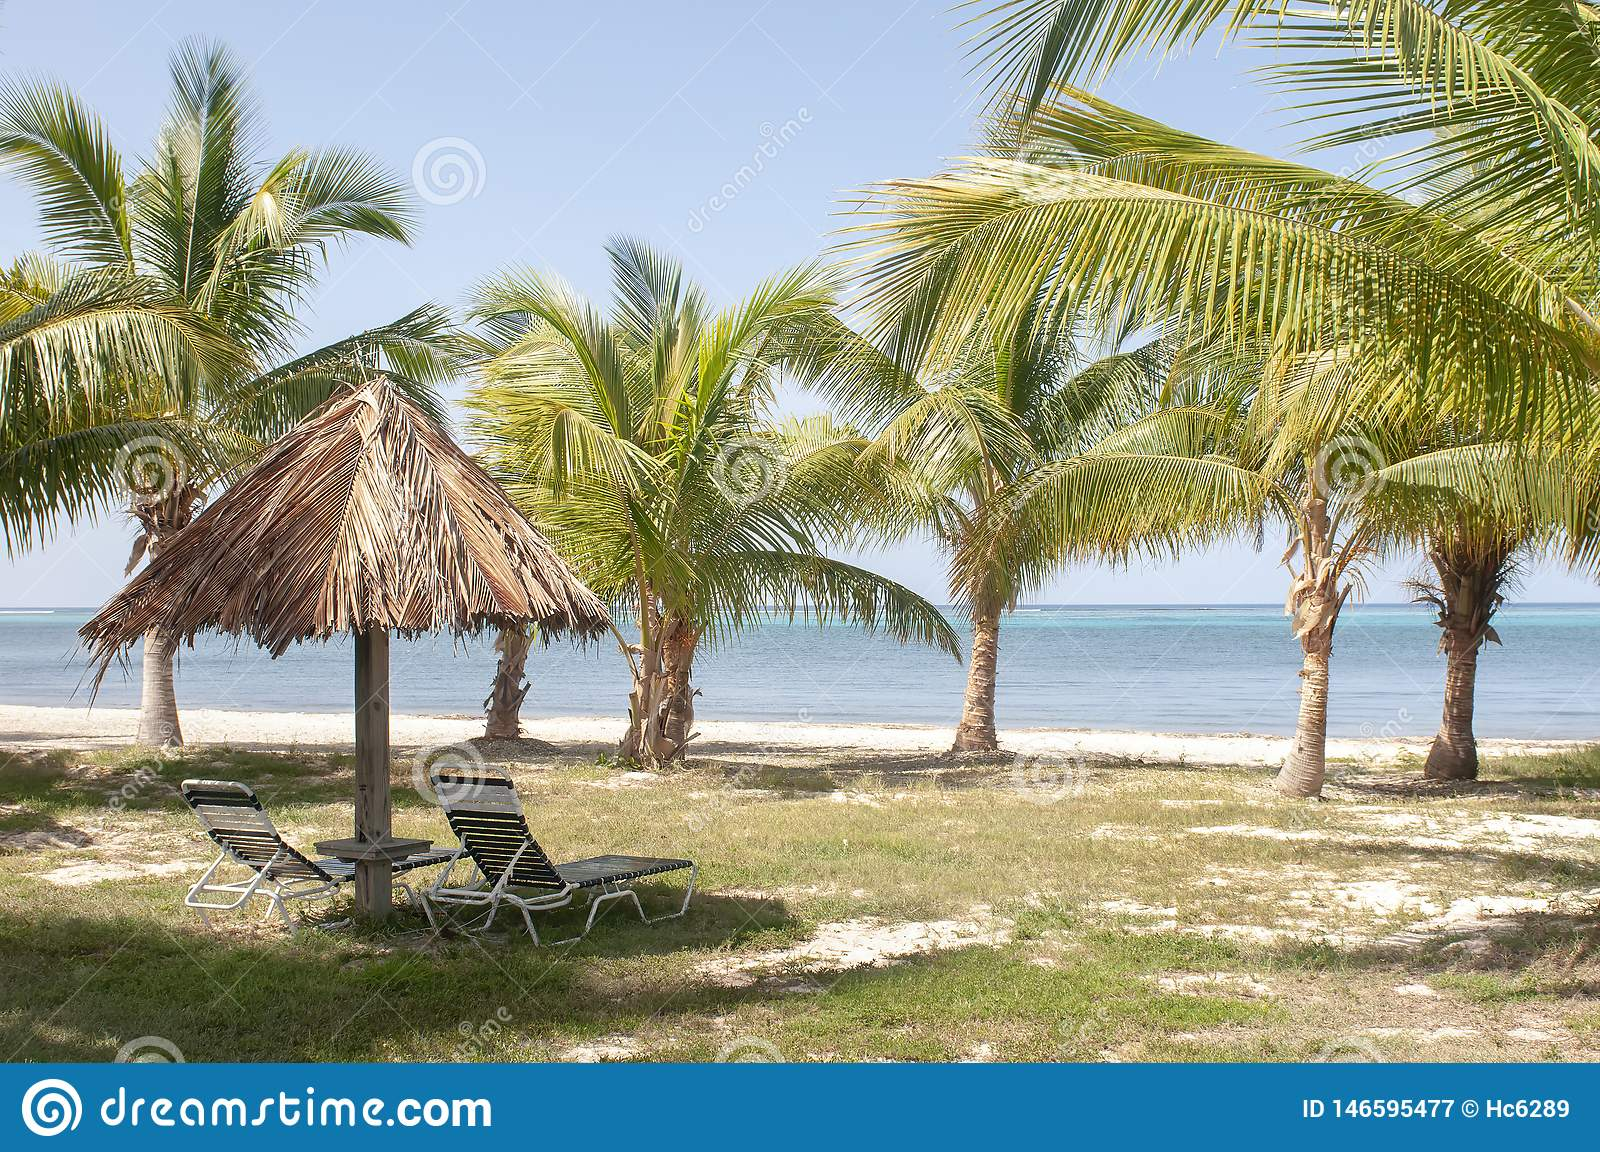 Hut with Chairs and Palm Trees on Beach Landscape with Beautiful Blue Waters on Island.